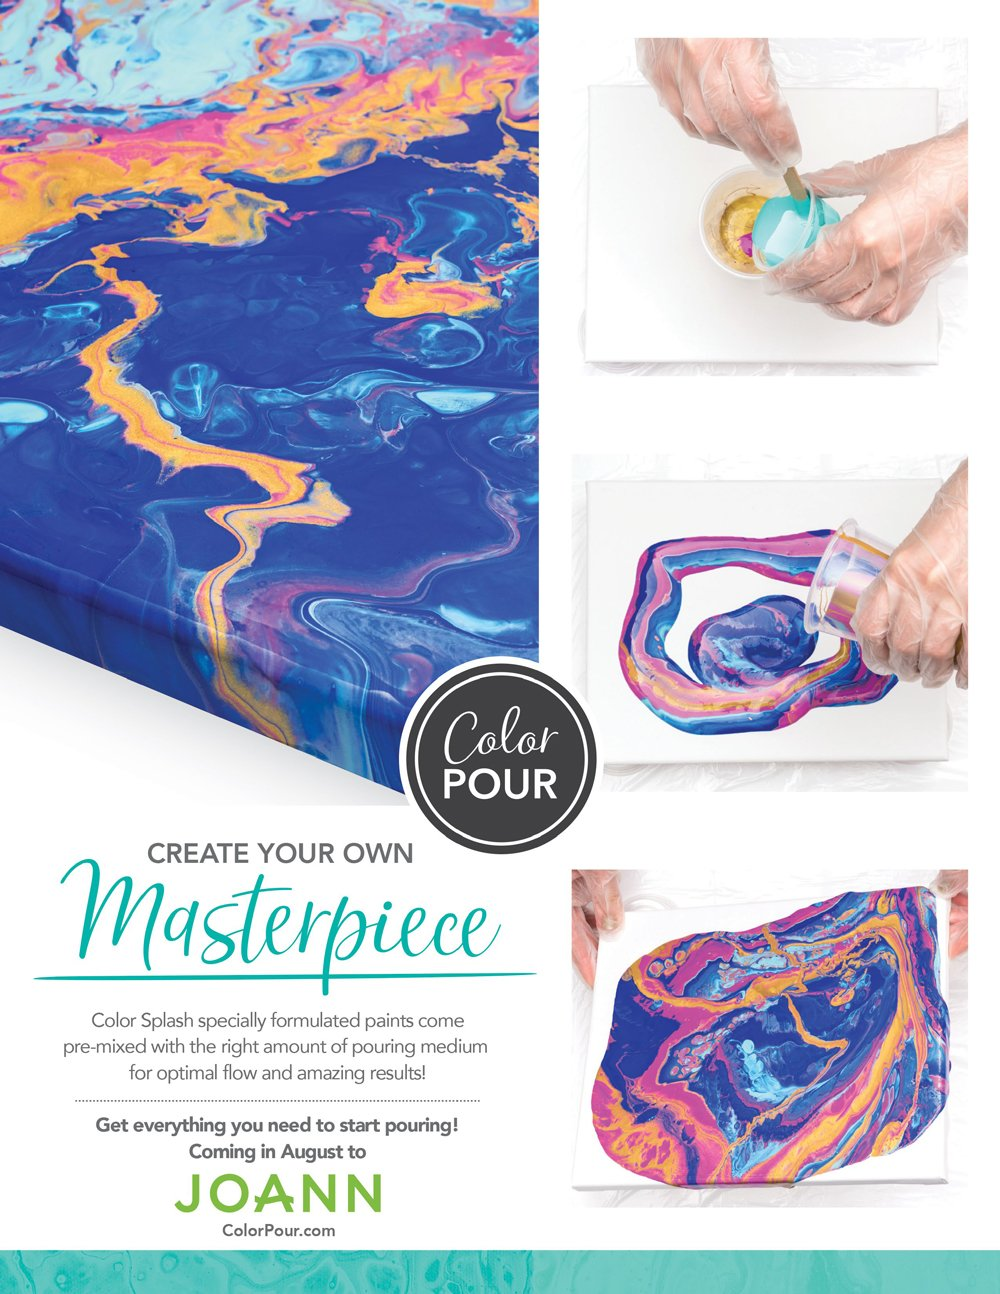 Joann Color Pour Ad - Scrapbook & Cards Today Summer 2018 Issue